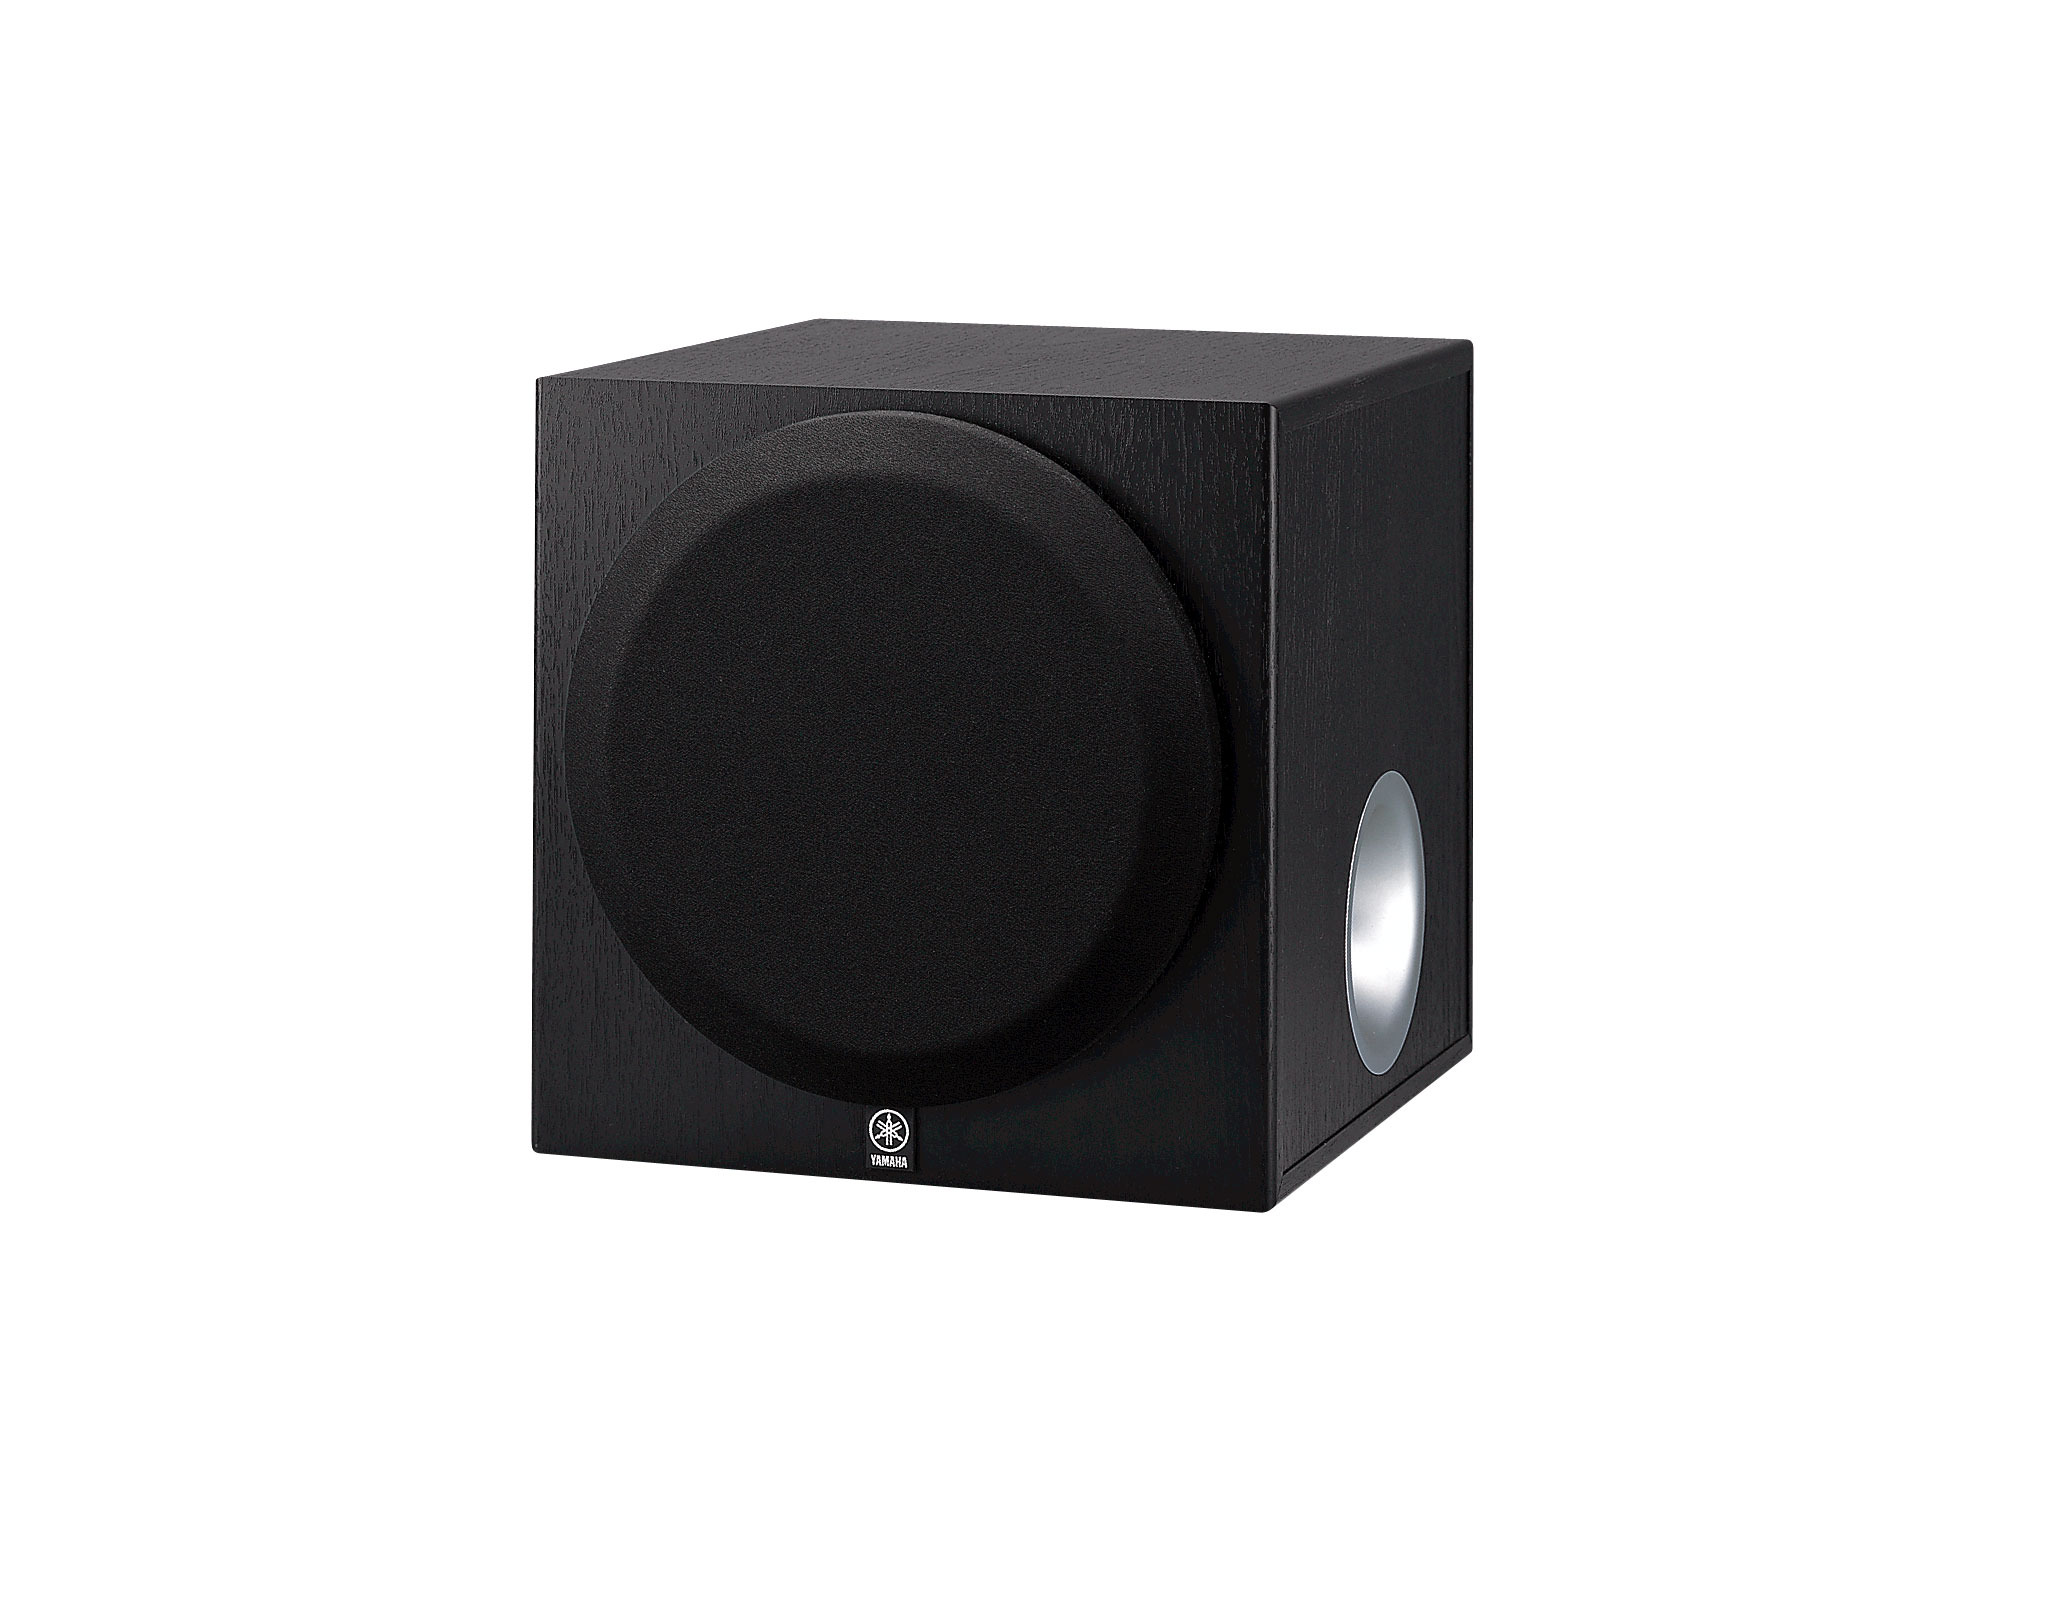 yamaha yst sw012 subwoofer musta subwooferit. Black Bedroom Furniture Sets. Home Design Ideas